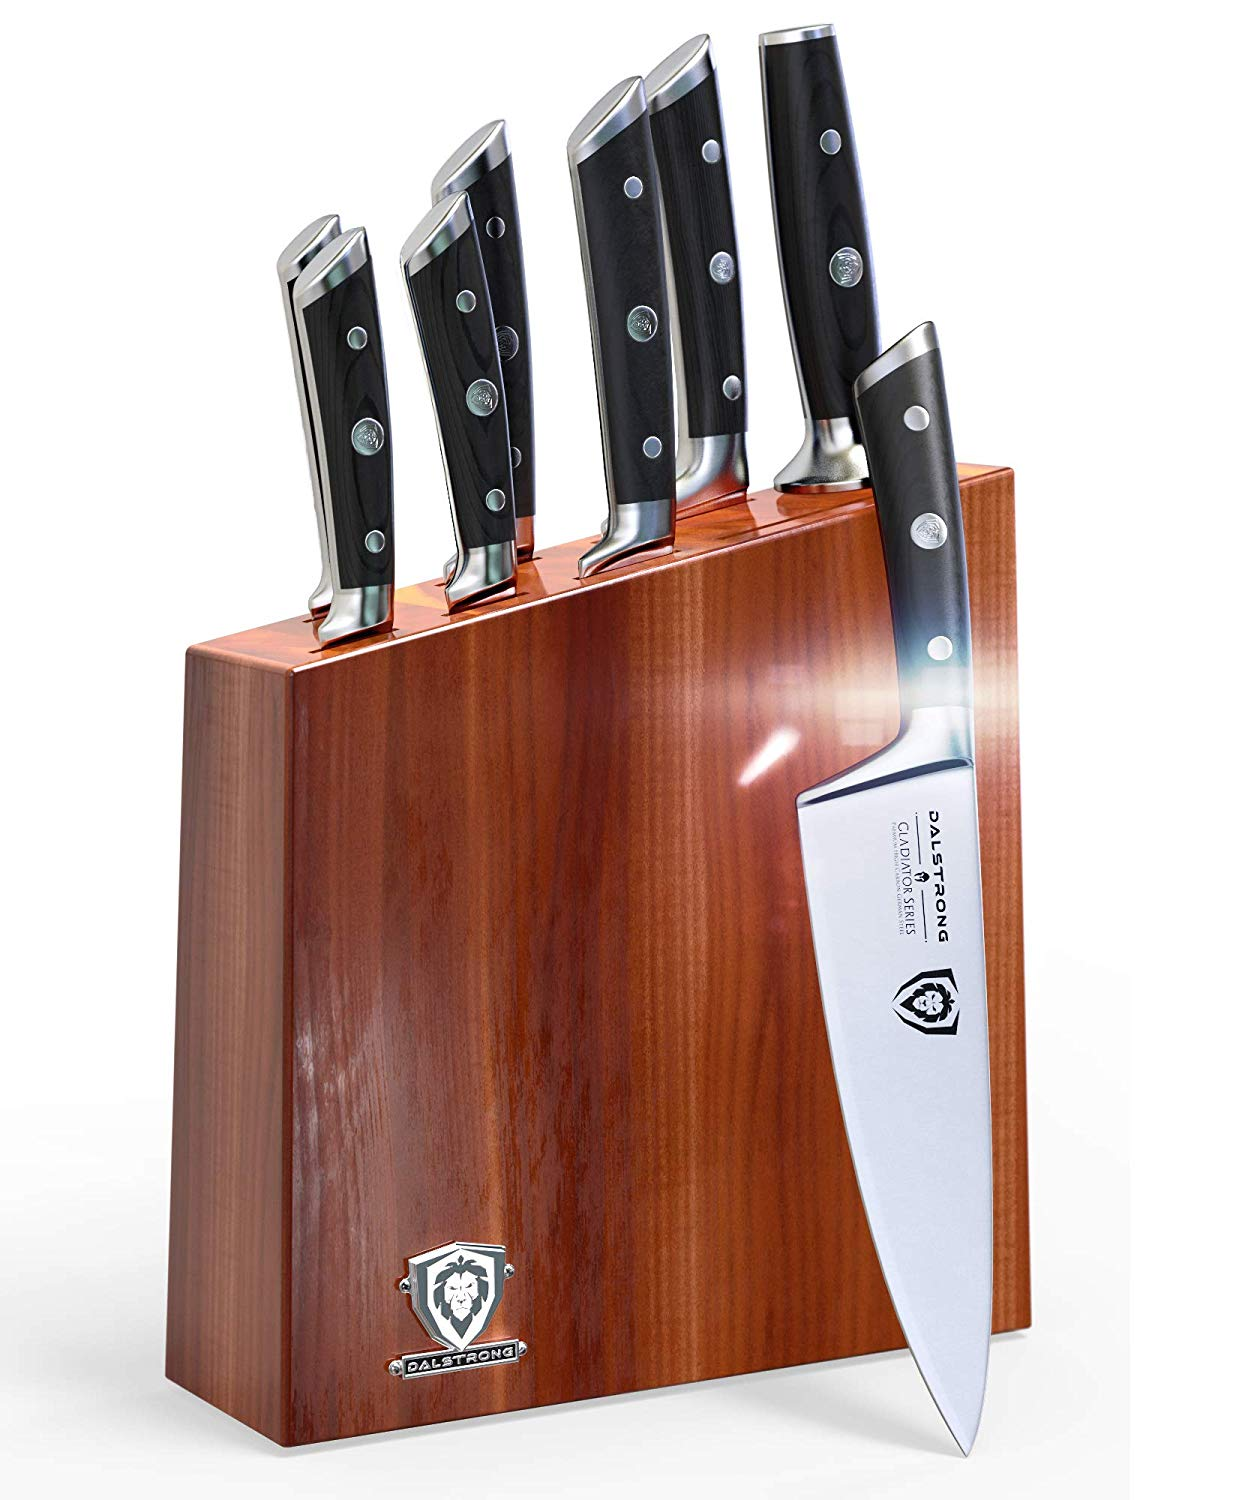 Dalstrong design, as one of the 10 best bamboo wooden knife block set and organizer